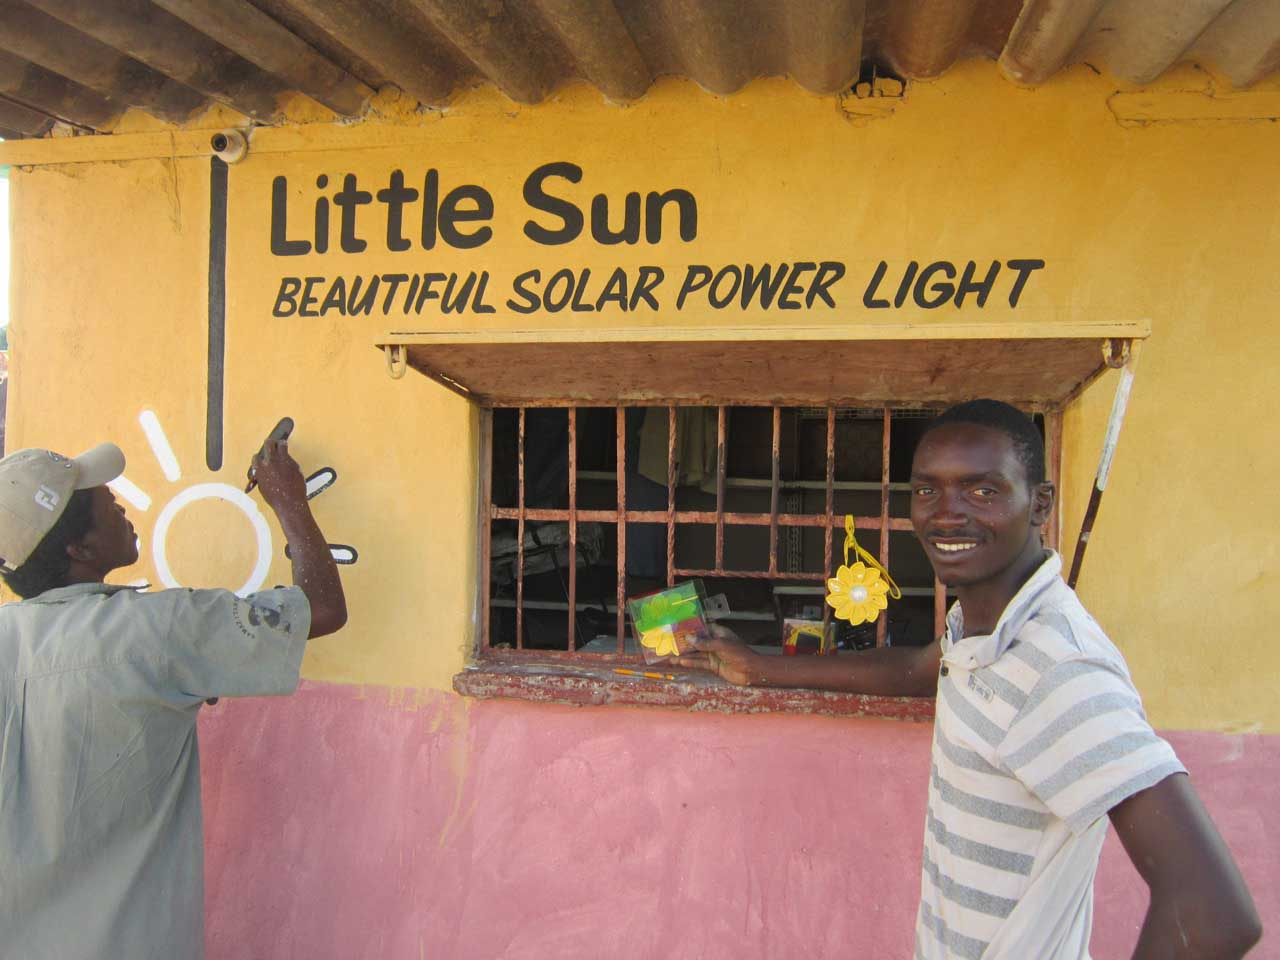 Little Sun aspires to raise awareness about energy access and climate action.